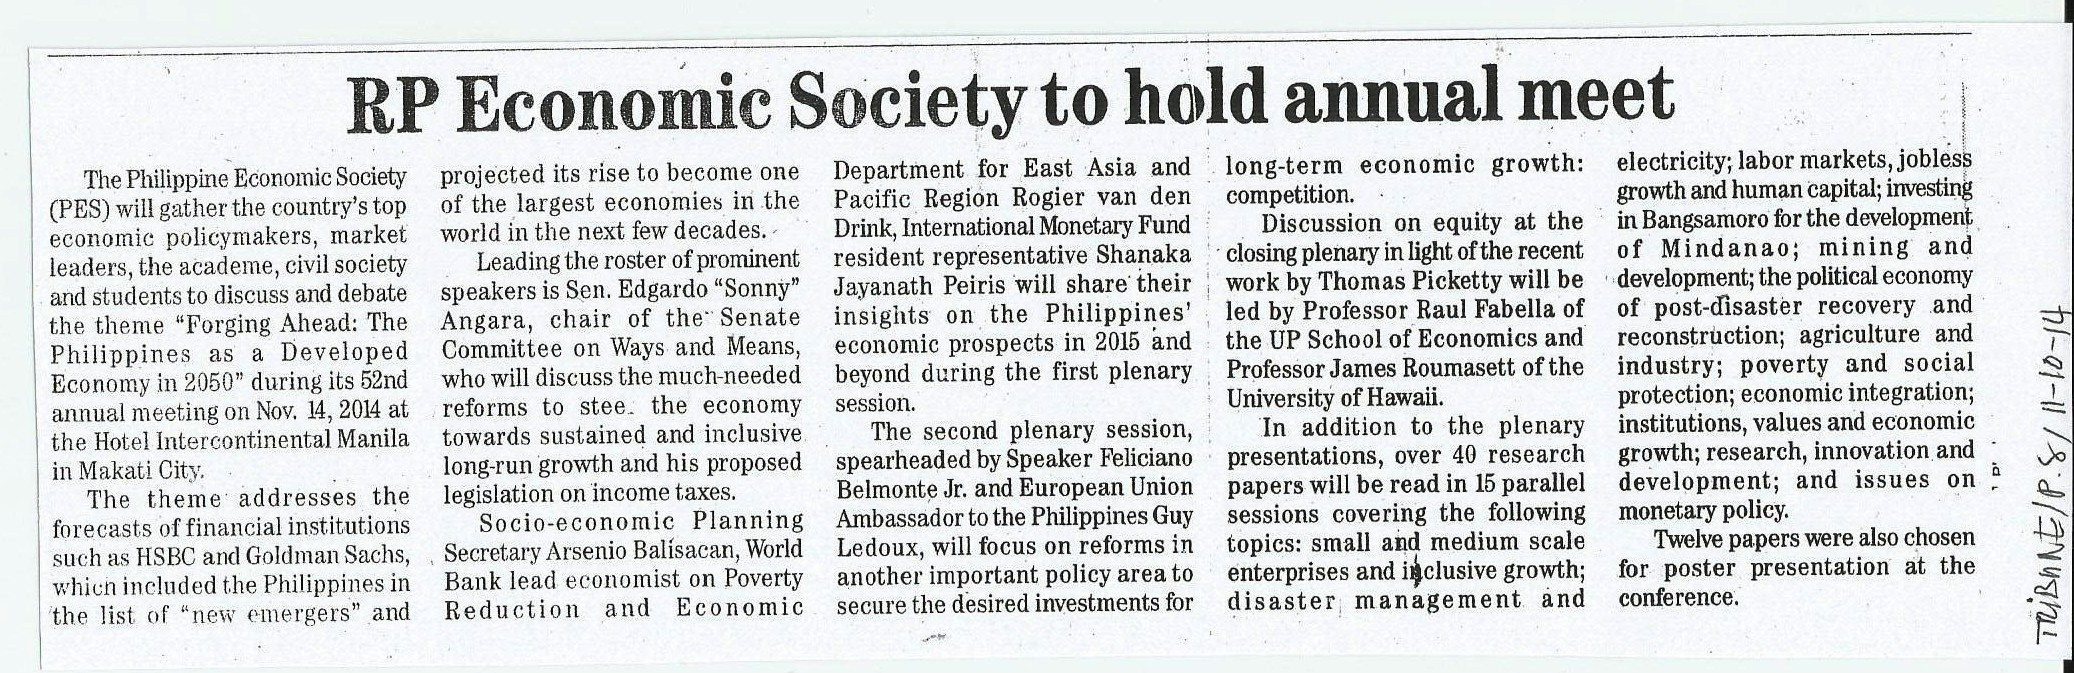 social political and economic condition of the pgilippines during rizal Custom search country studies index.